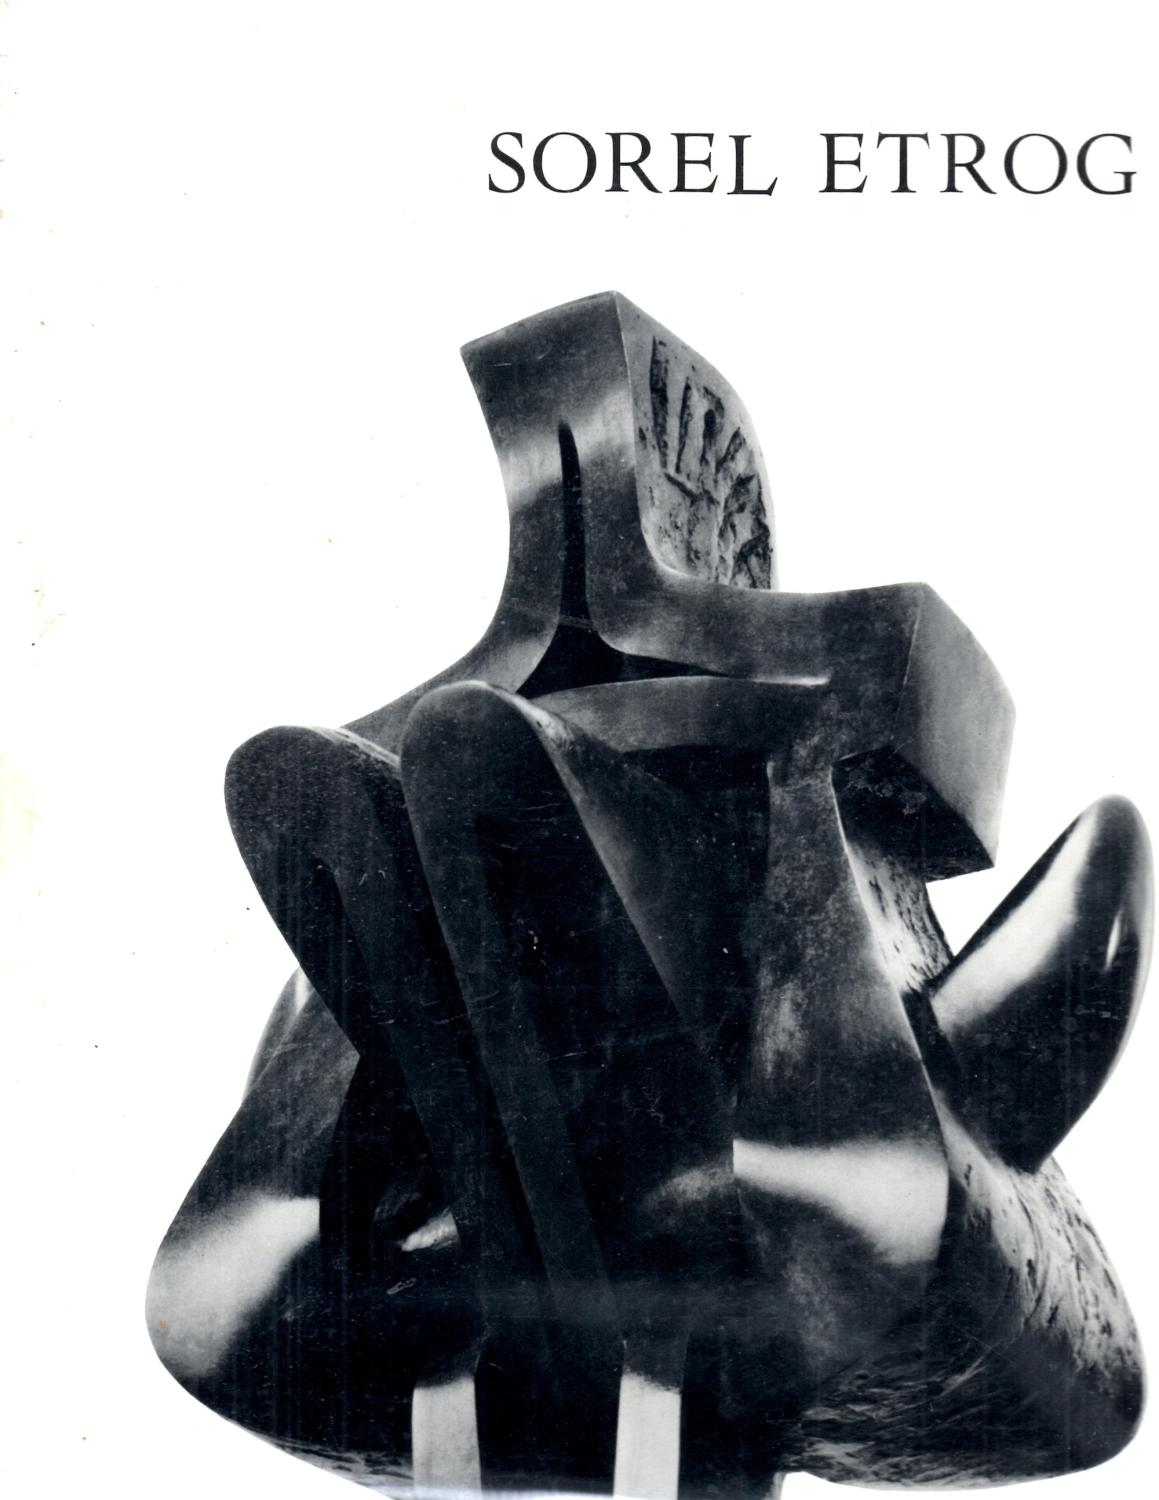 Sorel Etrog Withrow, William J. dj has minor wear and soil with a few small edge tears up to 1/4  and 1  semicircular stain on front by spine, interior tight and clean, unpaginated,